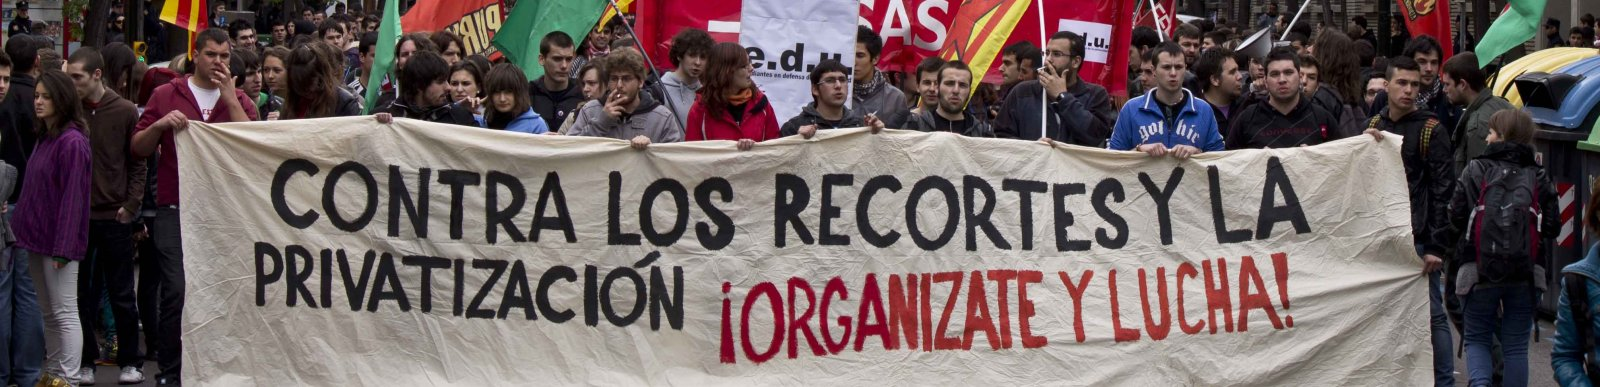 Student demonstration against cuts in public education, April 2012, Zaragoza, Spain